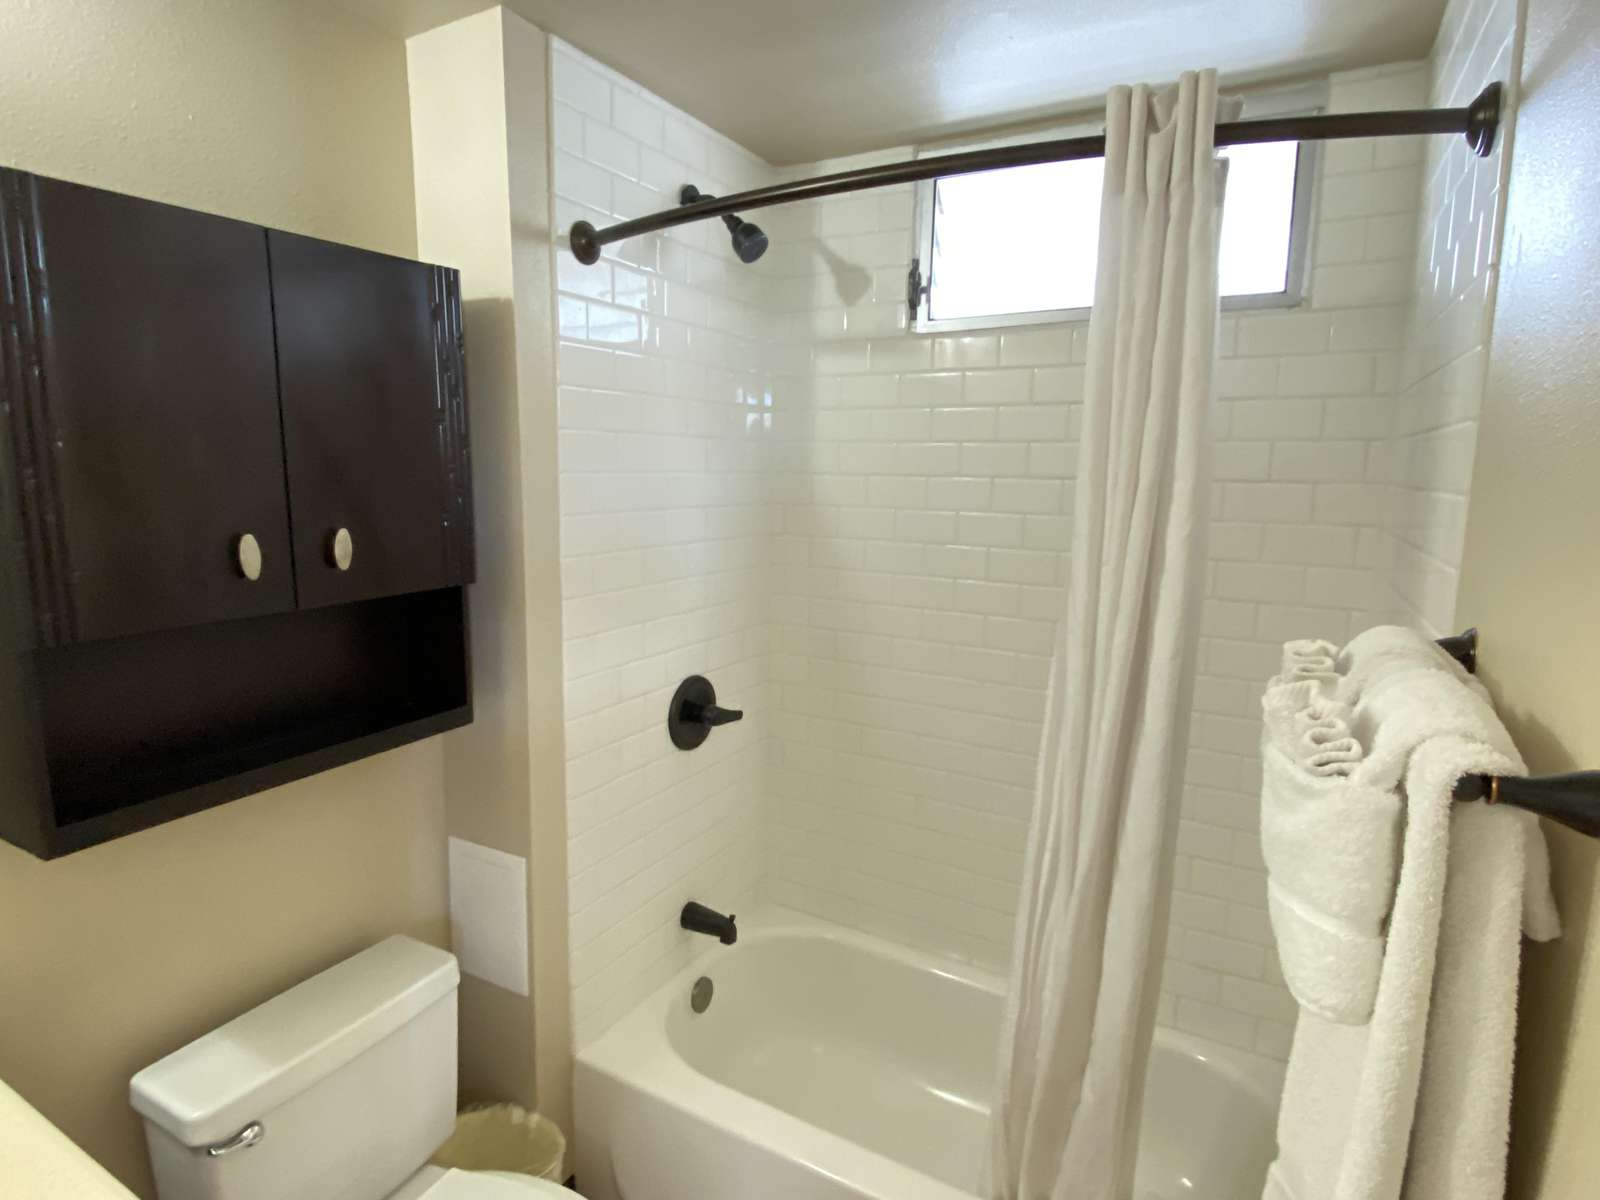 Shower tub combo - Great for family living.